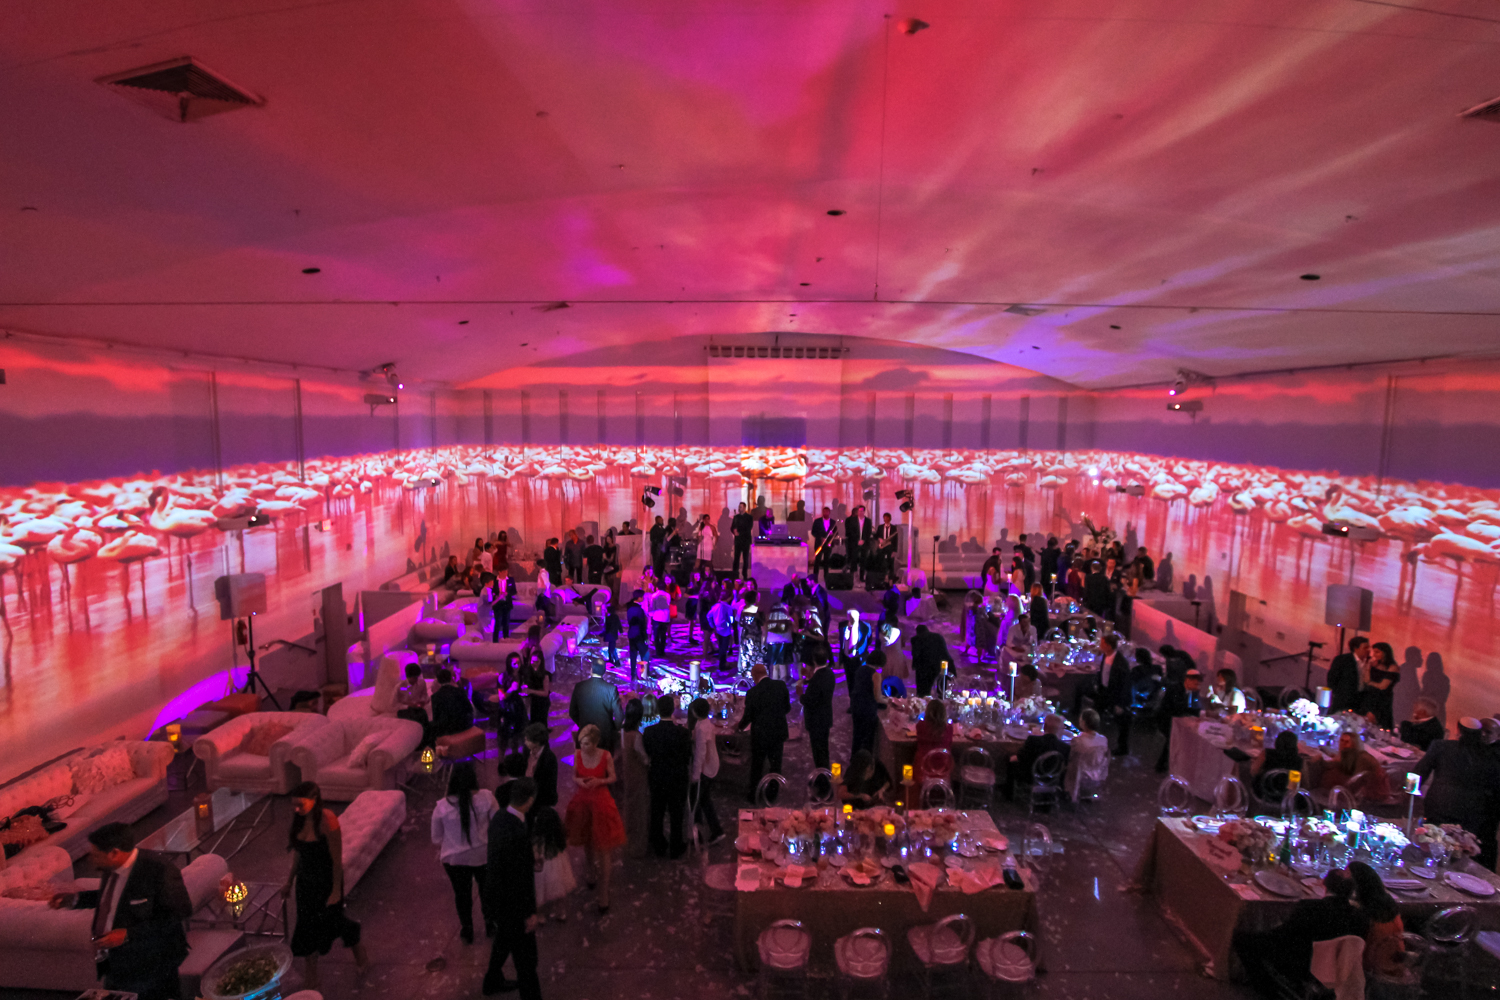 SOFT PINKS, GLITZ AND ELEGANCE - A BATMITZVAH FULL OF BEAUTY - THE TEMPLE HOUSE